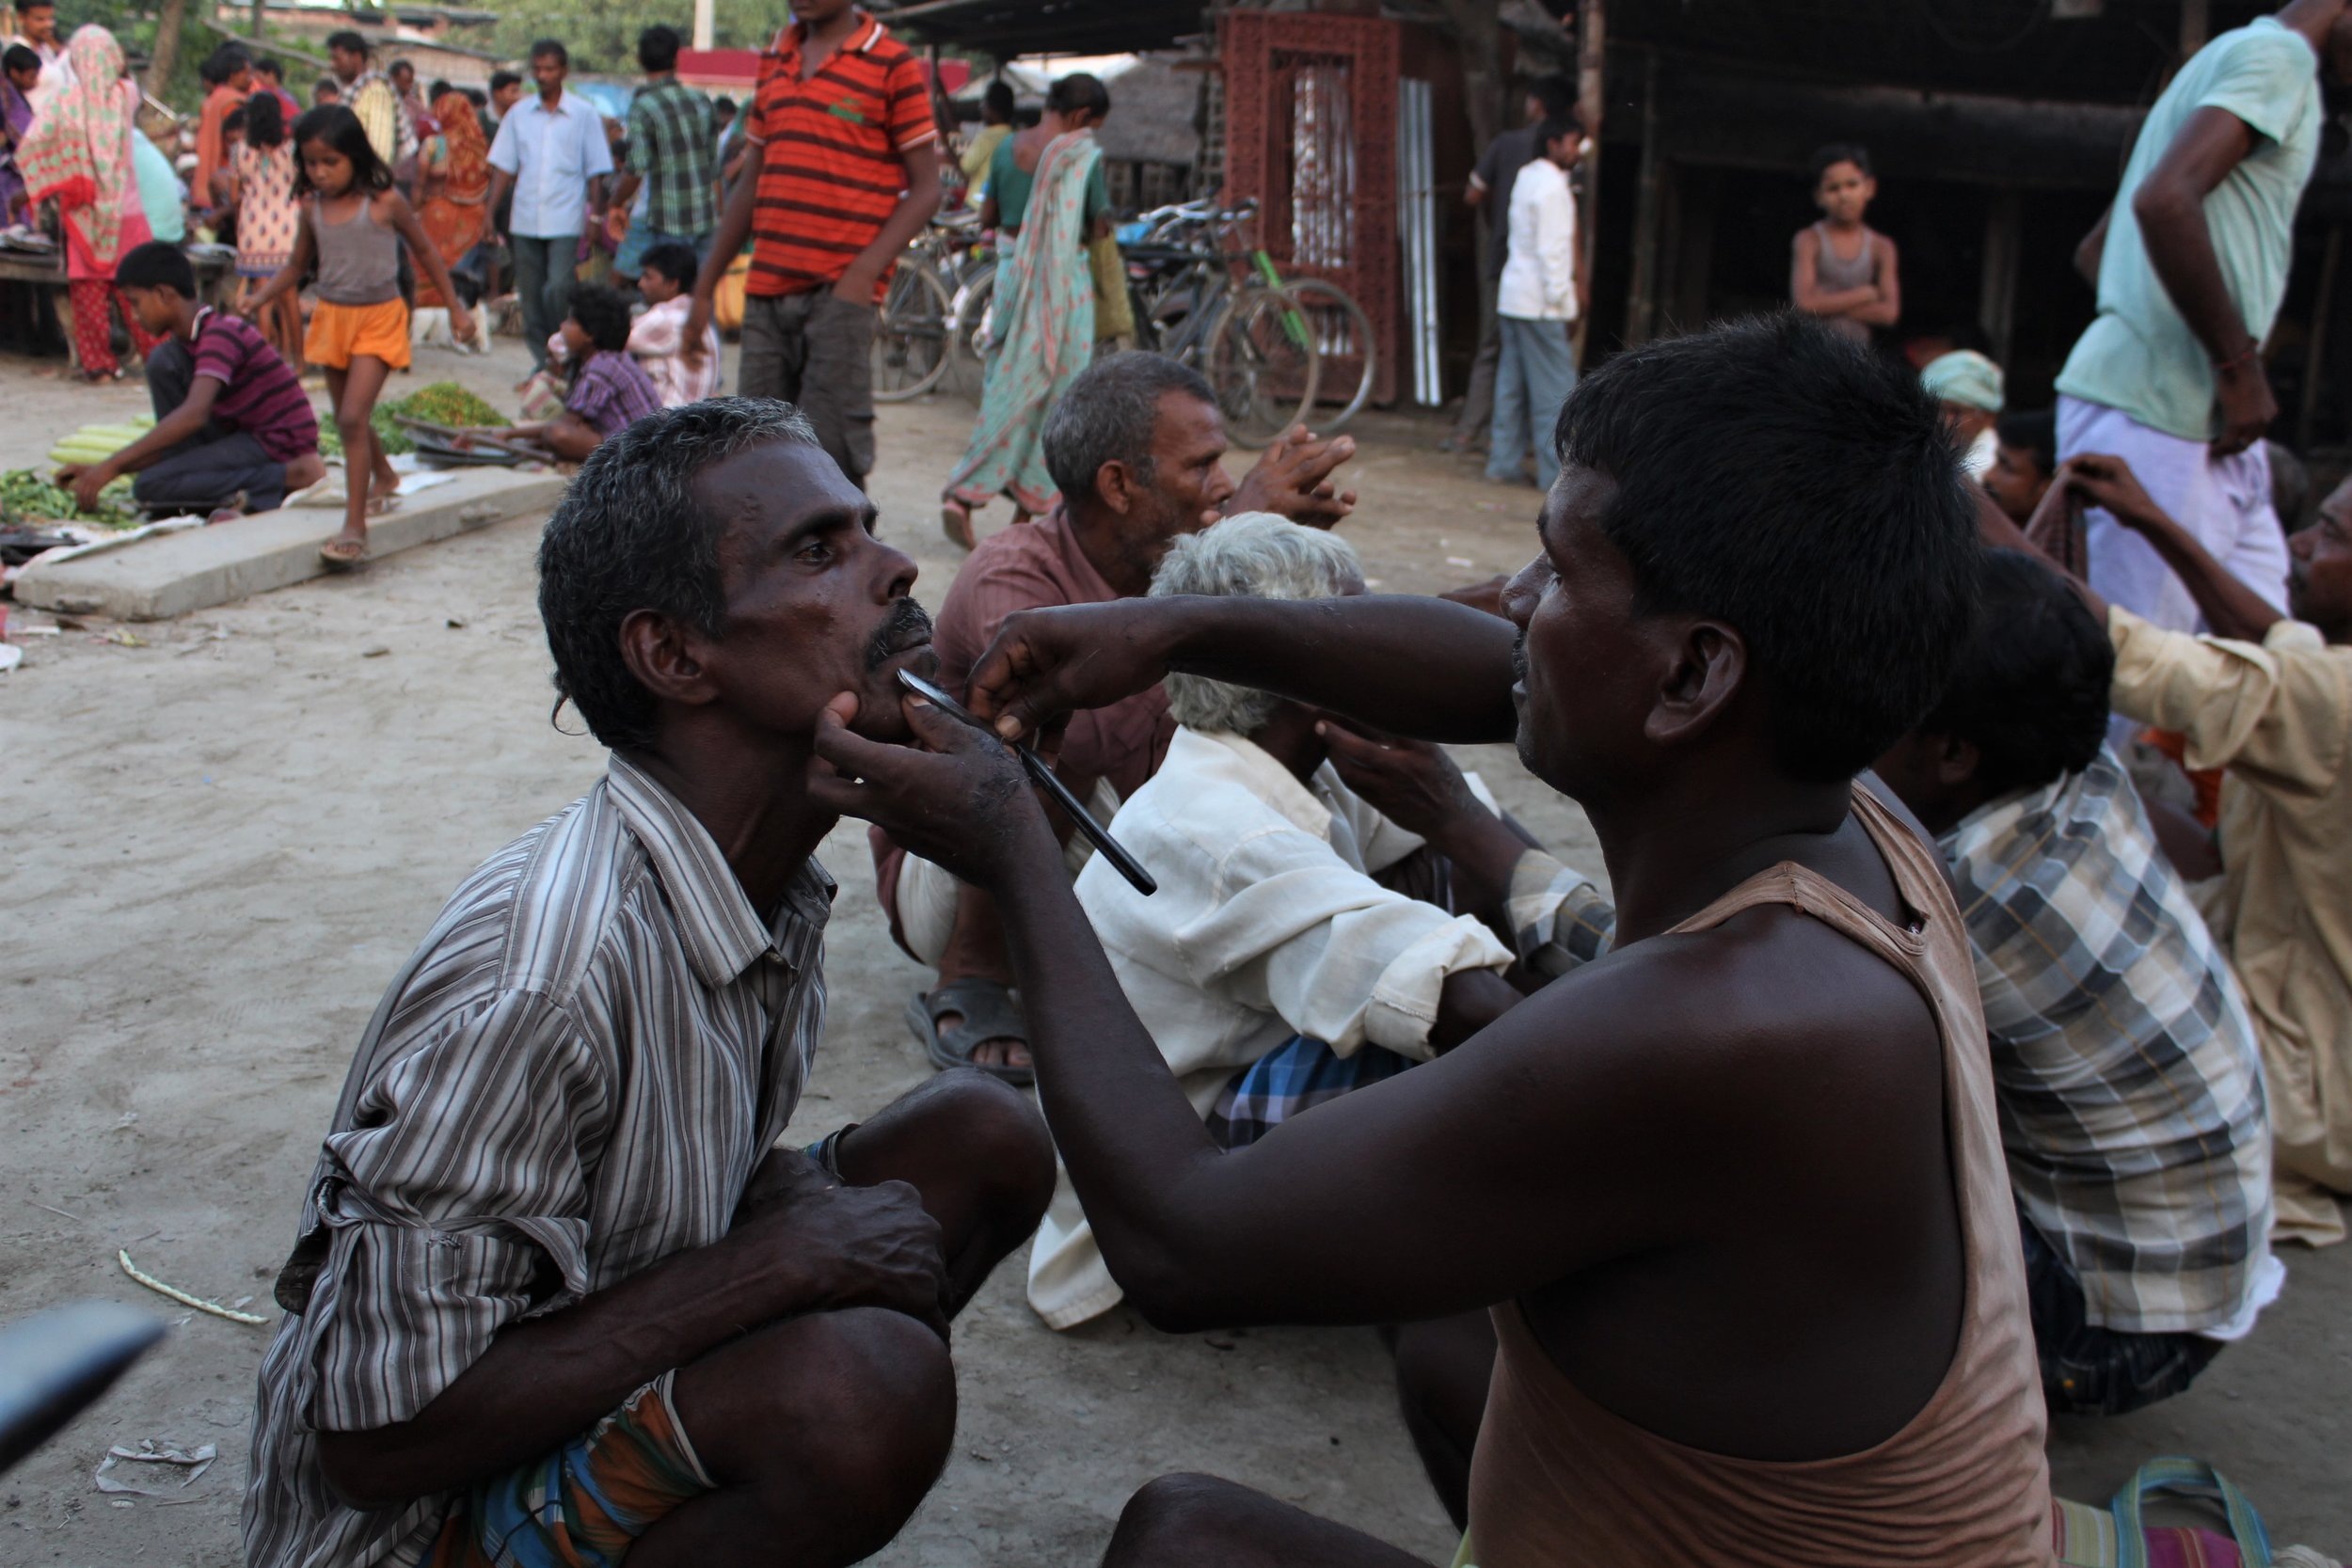 A barber grooms a man in the village market. Credit: Atul Anand